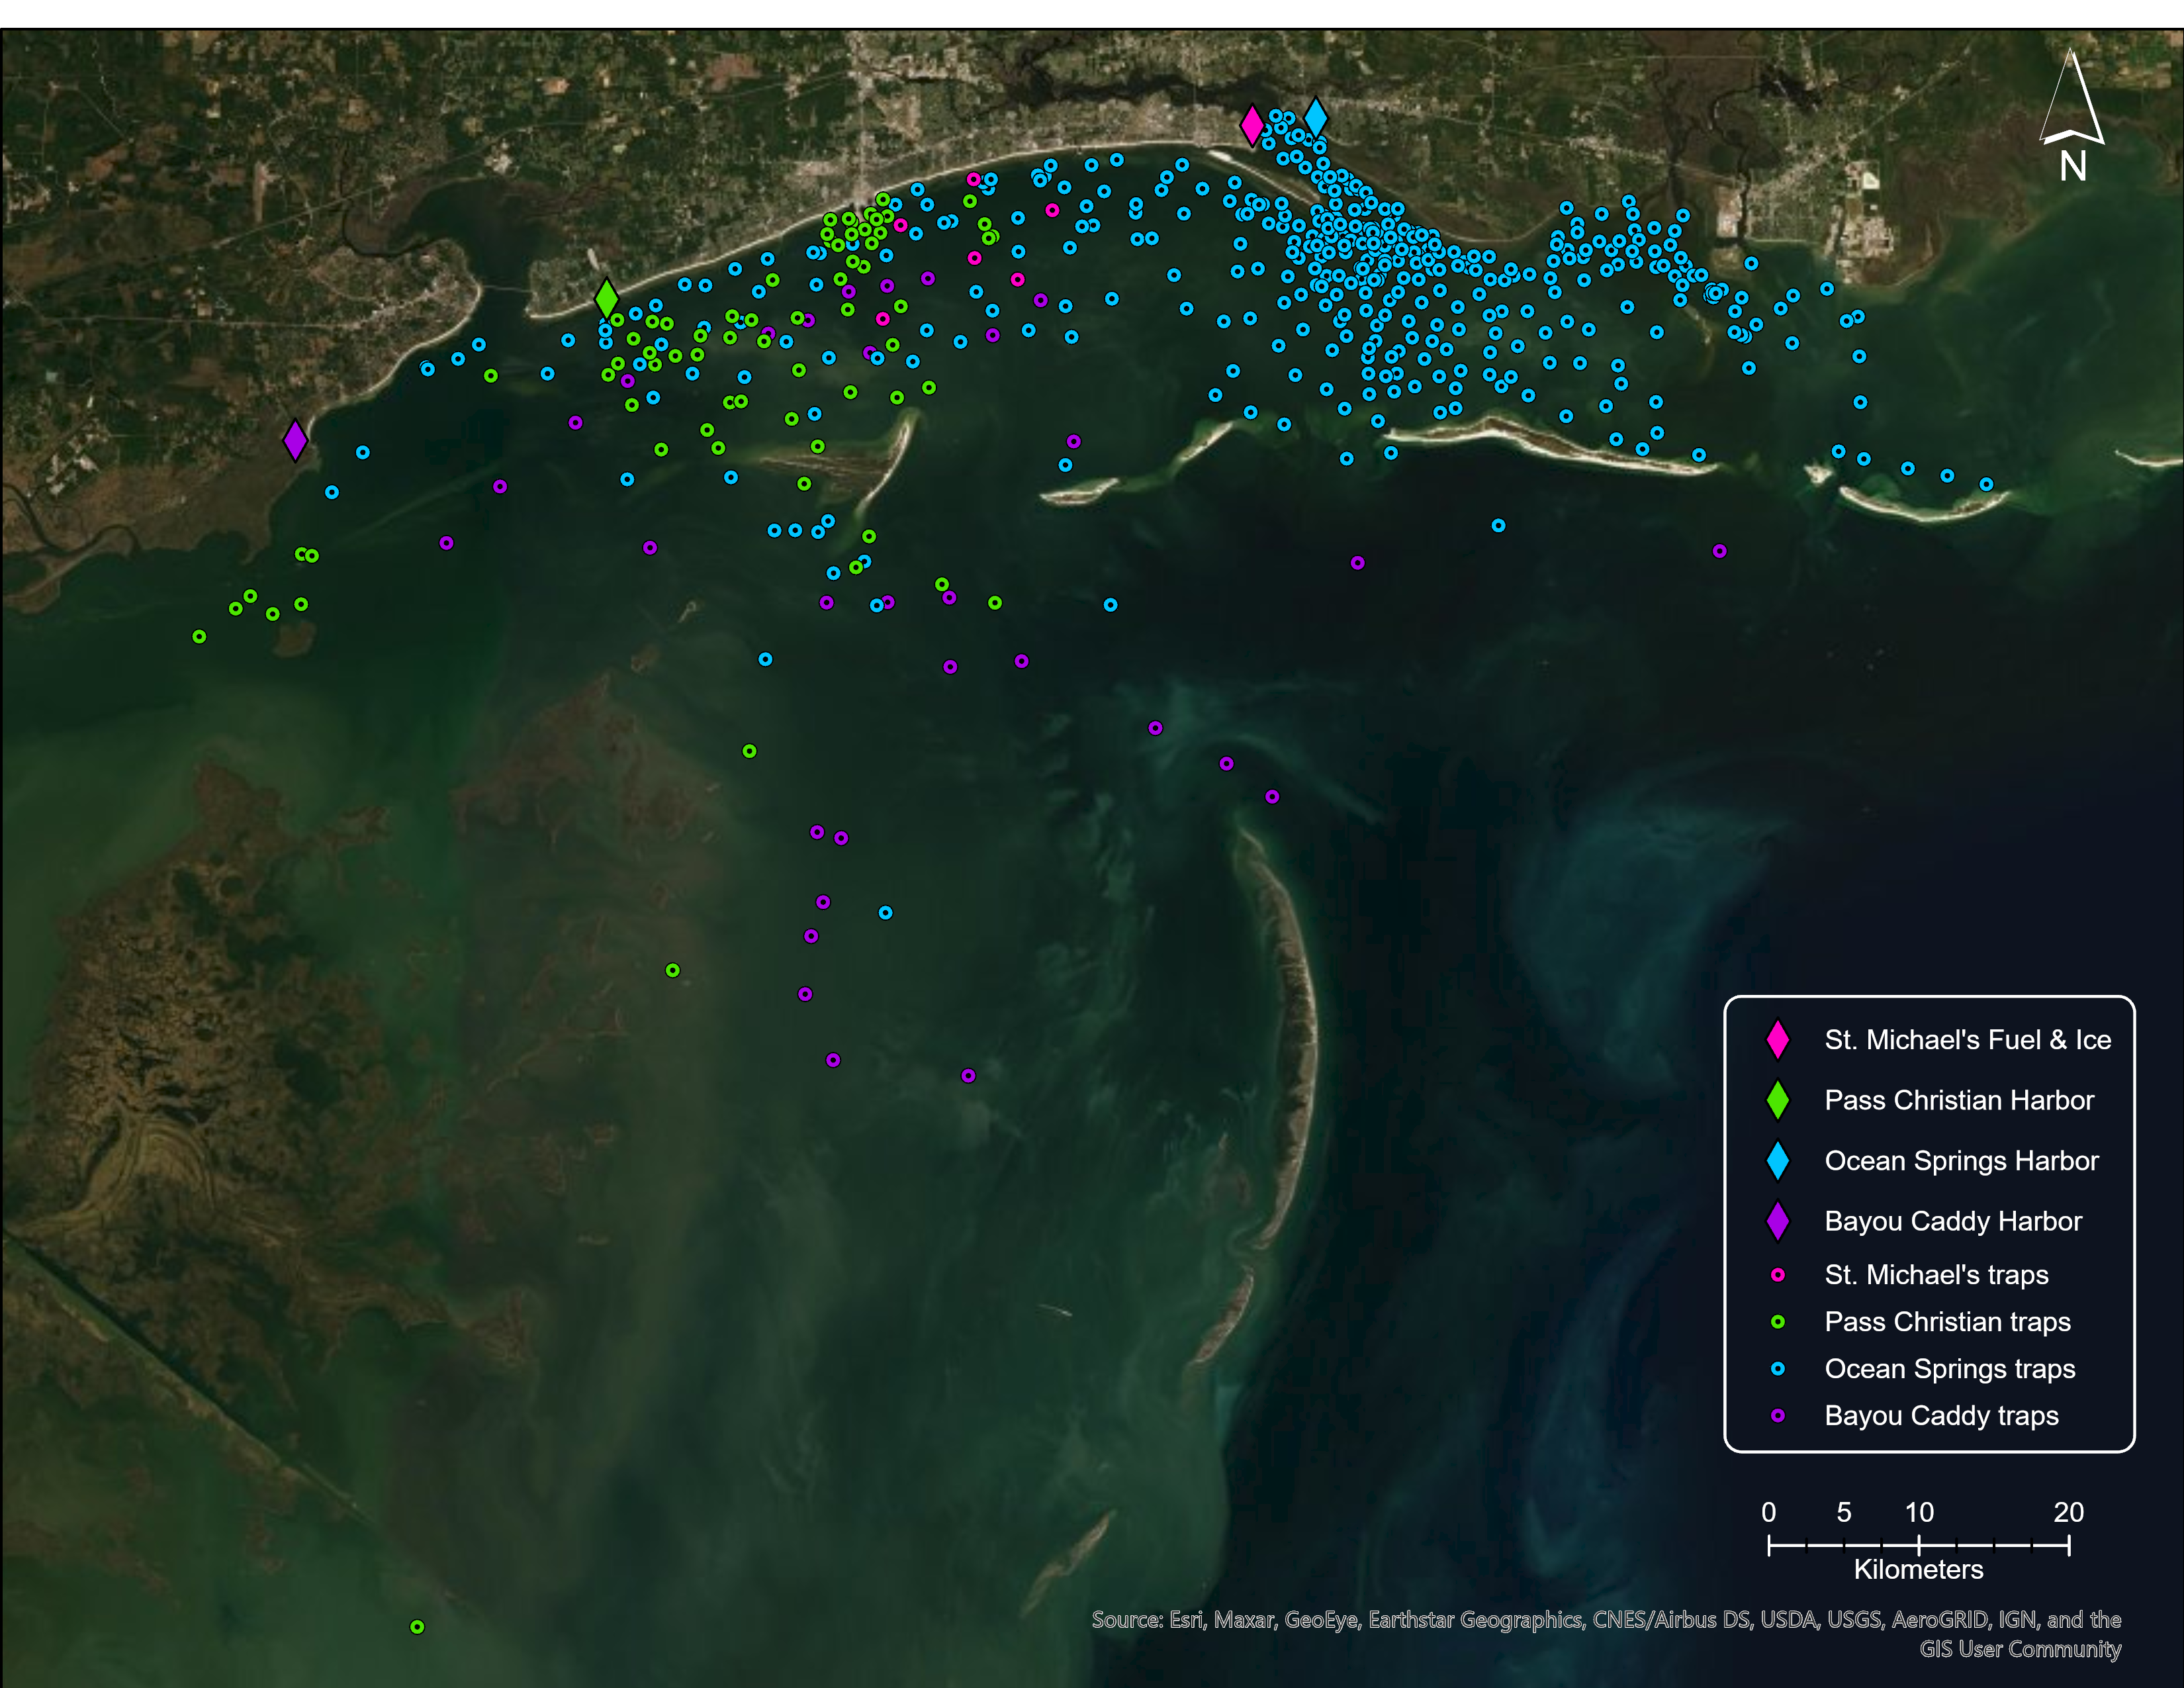 map of derelict crab traps caught and removed by shrimpers participating in derelict trap reward program. The traps are color coded by the sites they were disposed of at.